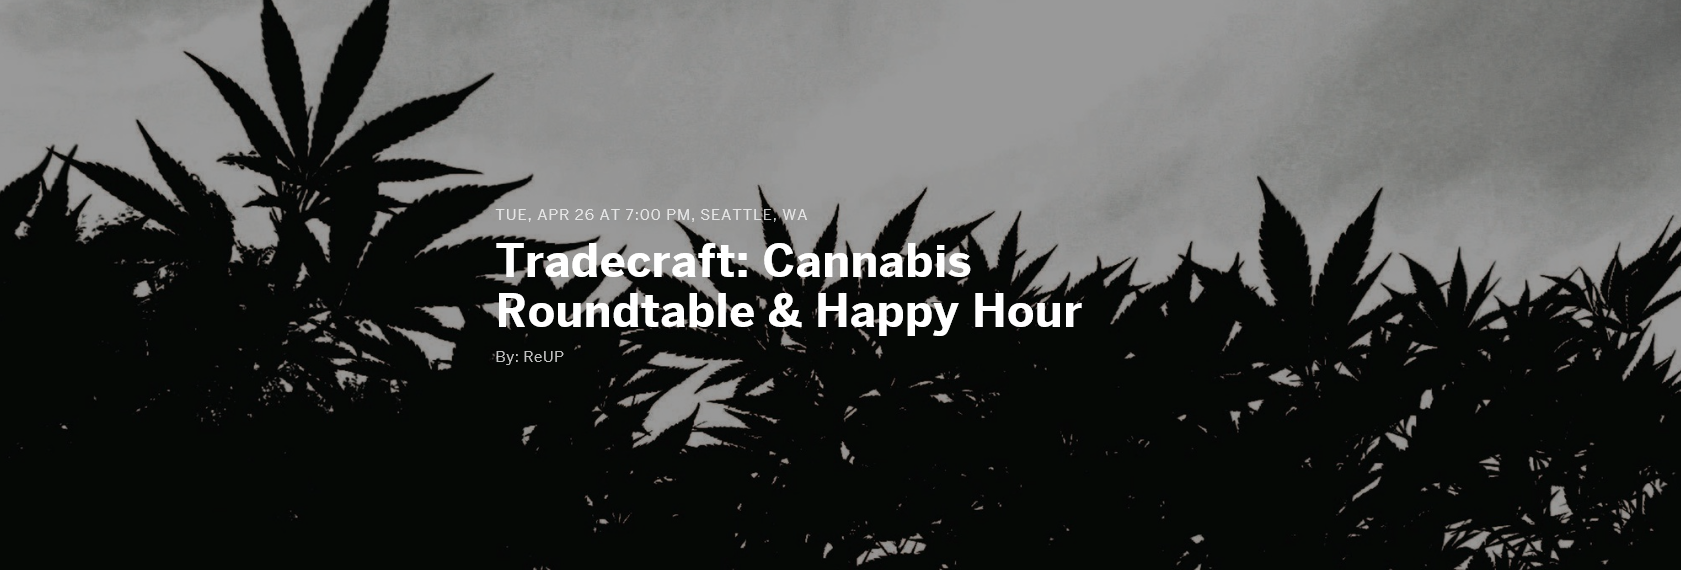 Tradecraft: Cannabis Roundtable and Happy Hour